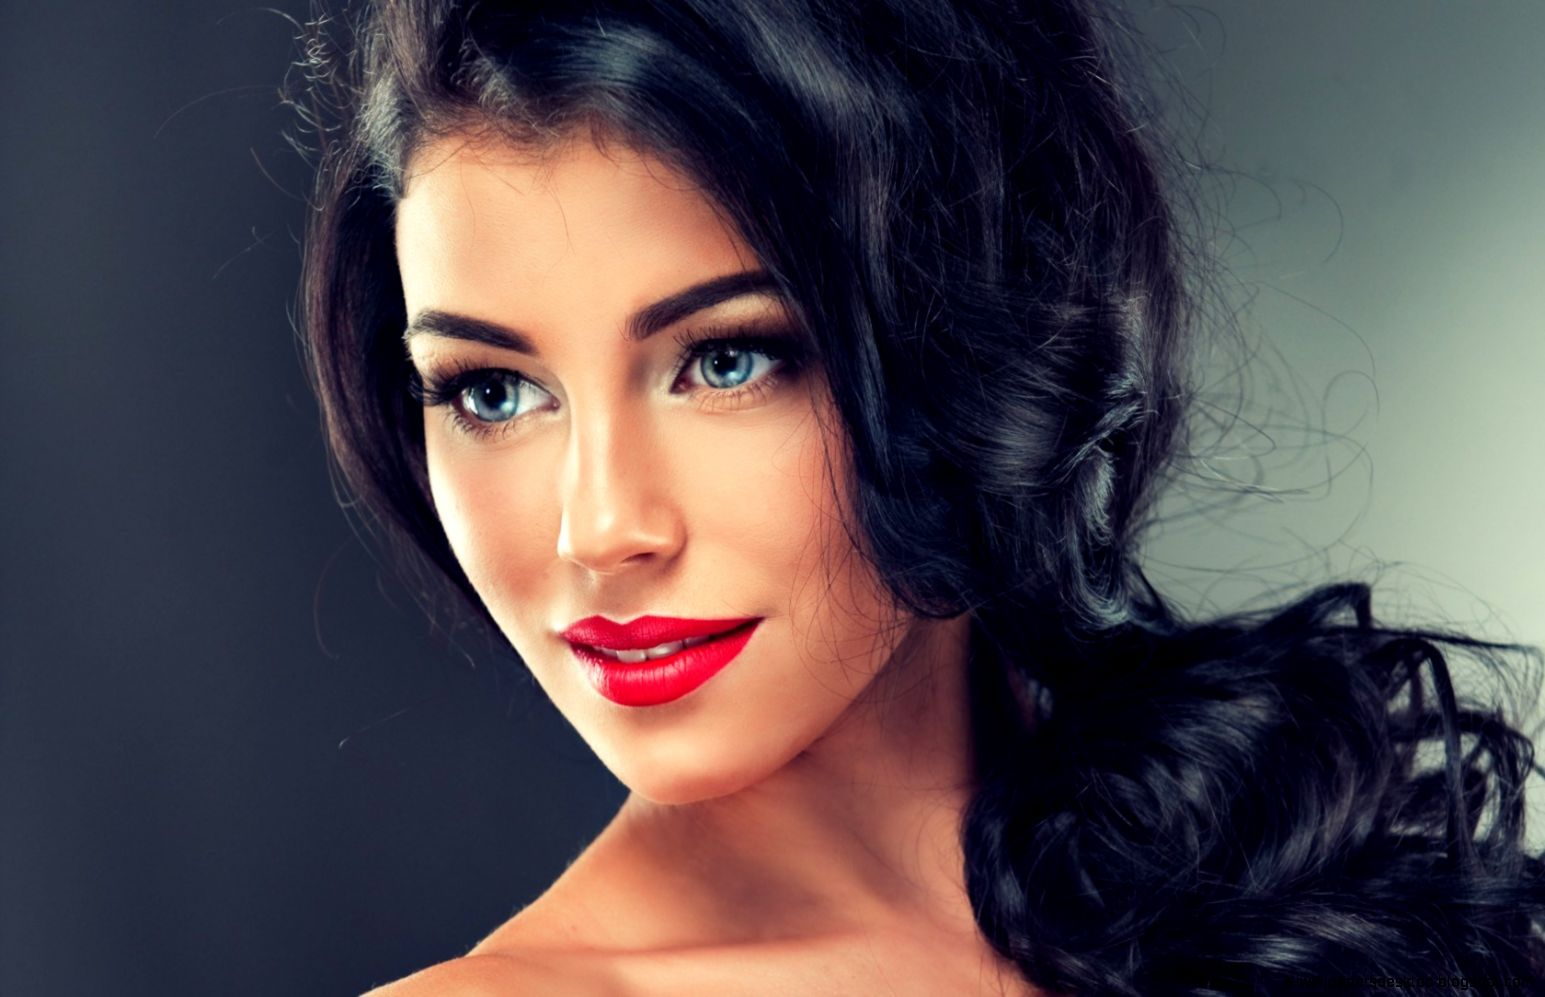 Brunette Girl Hair Curls Makeup Eyes Eyelashes Lips Lipstick Hd